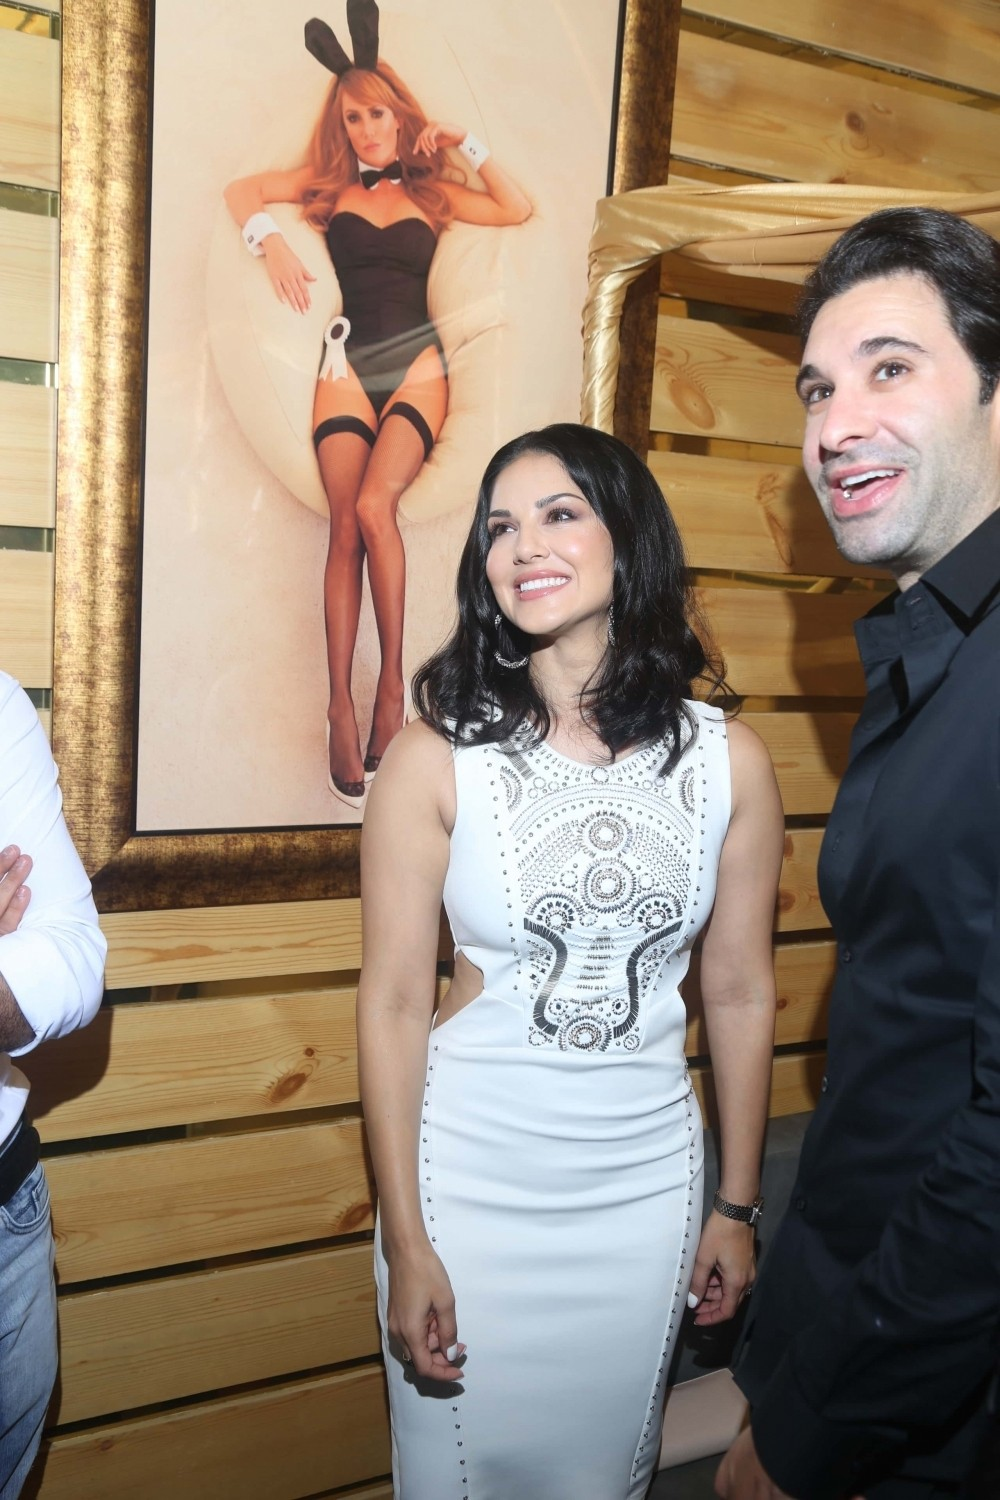 Sunny Leone,actress Sunny Leone,Sachiin Joshi,Parag Sanghavi,Producer Parag Sanghavi,Sunny Leone launches Playboy Cafe,Playboy Cafe,Sunny Leone latest pics,Sunny Leone latest images,Sunny Leone latest photos,Sunny Leone latest stills,Sunny Leone latest pi